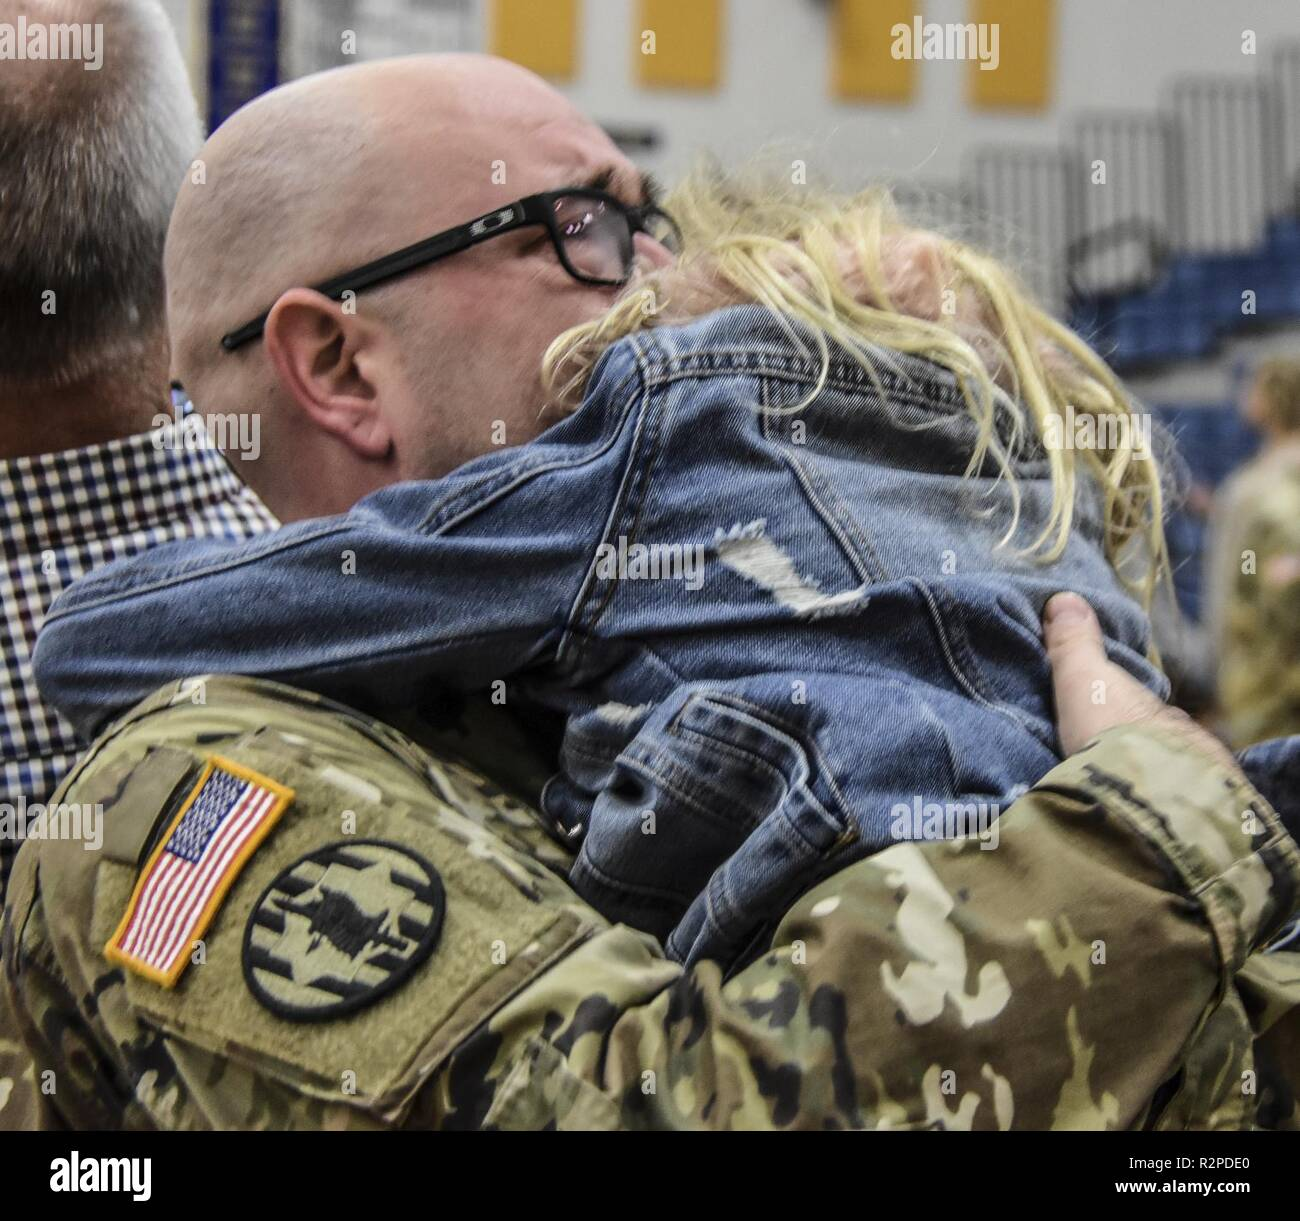 A child embraces her tearful father as they say, 'Good-bye' following a deployment ceremony at DeWitt High School in Michigan.  The Soldier, assigned to the 272nd RSG from the Michigan National Guard is supporting theater level operations in the middle east. - Stock Image